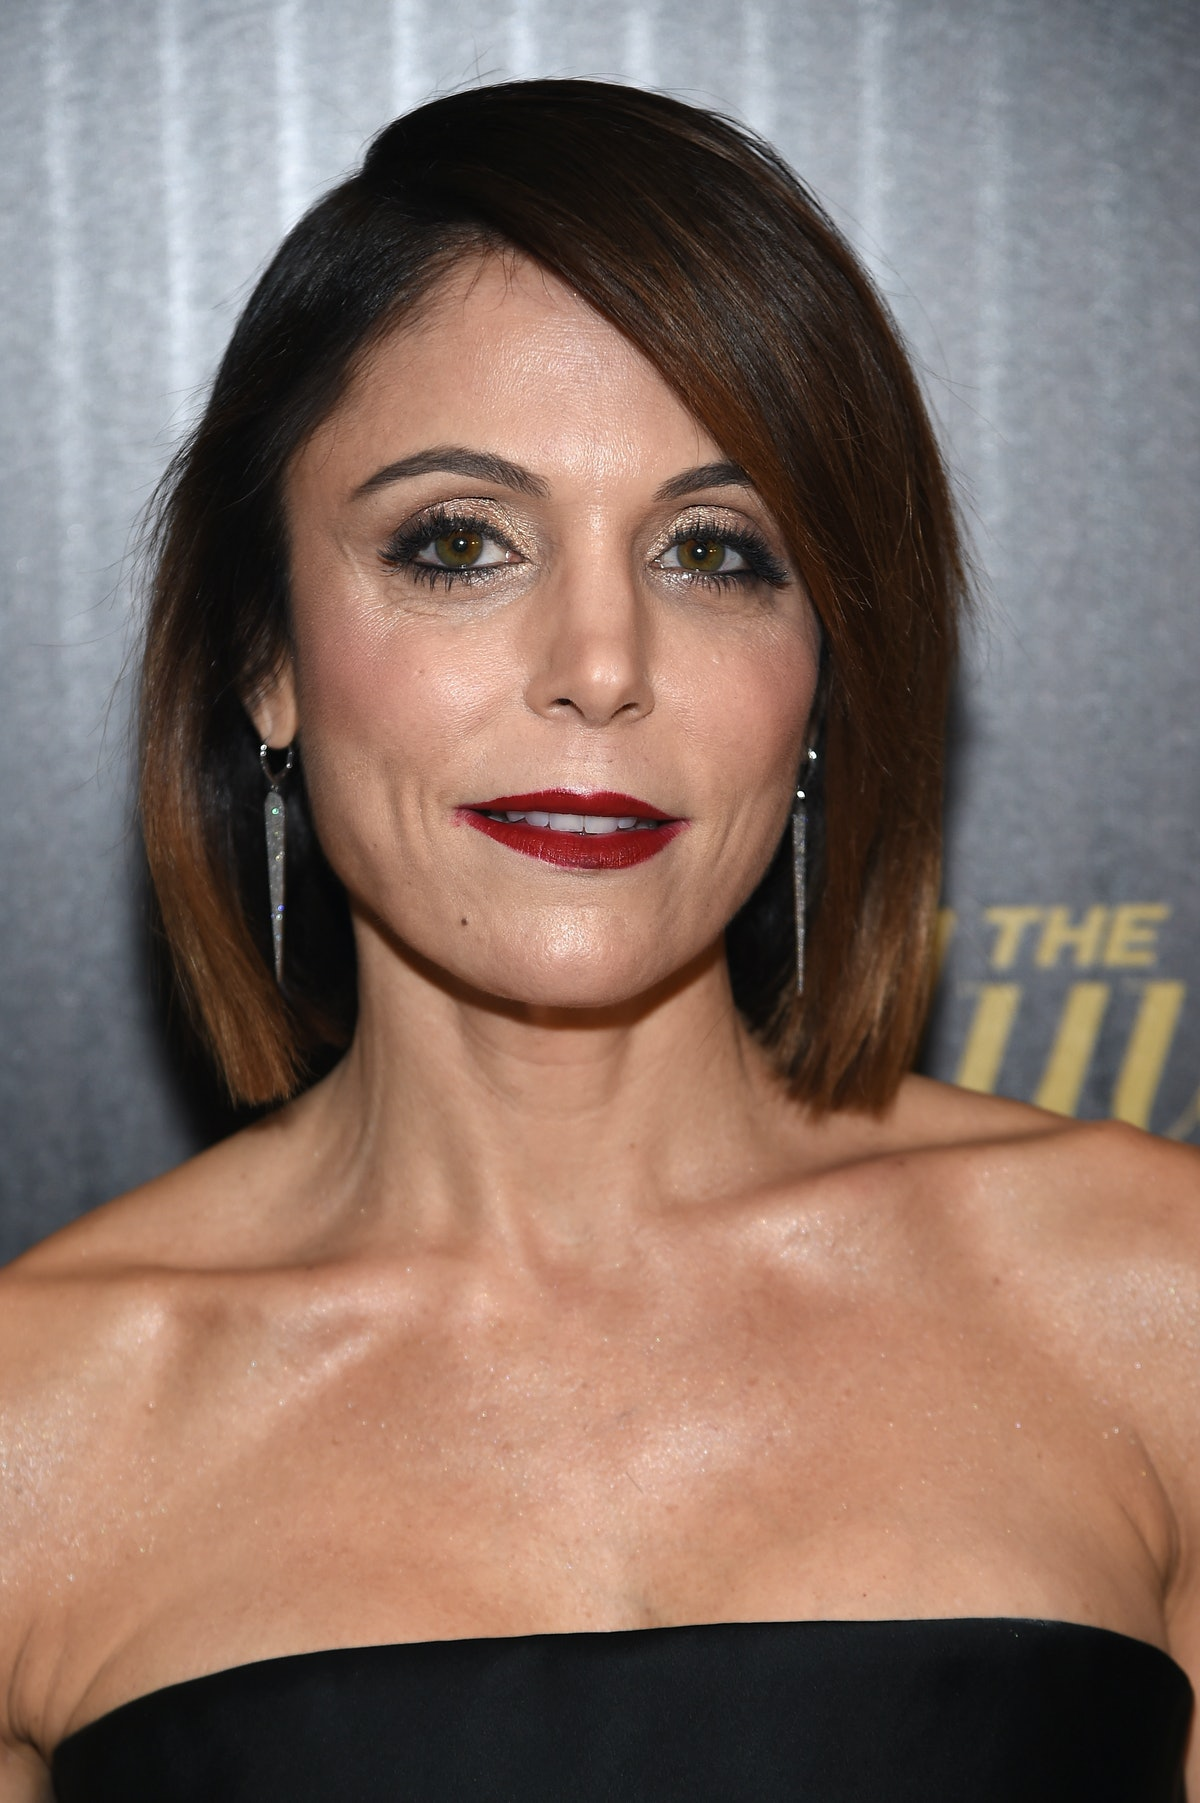 Bethenny Frankel May Leave 'Real Housewives Of New York